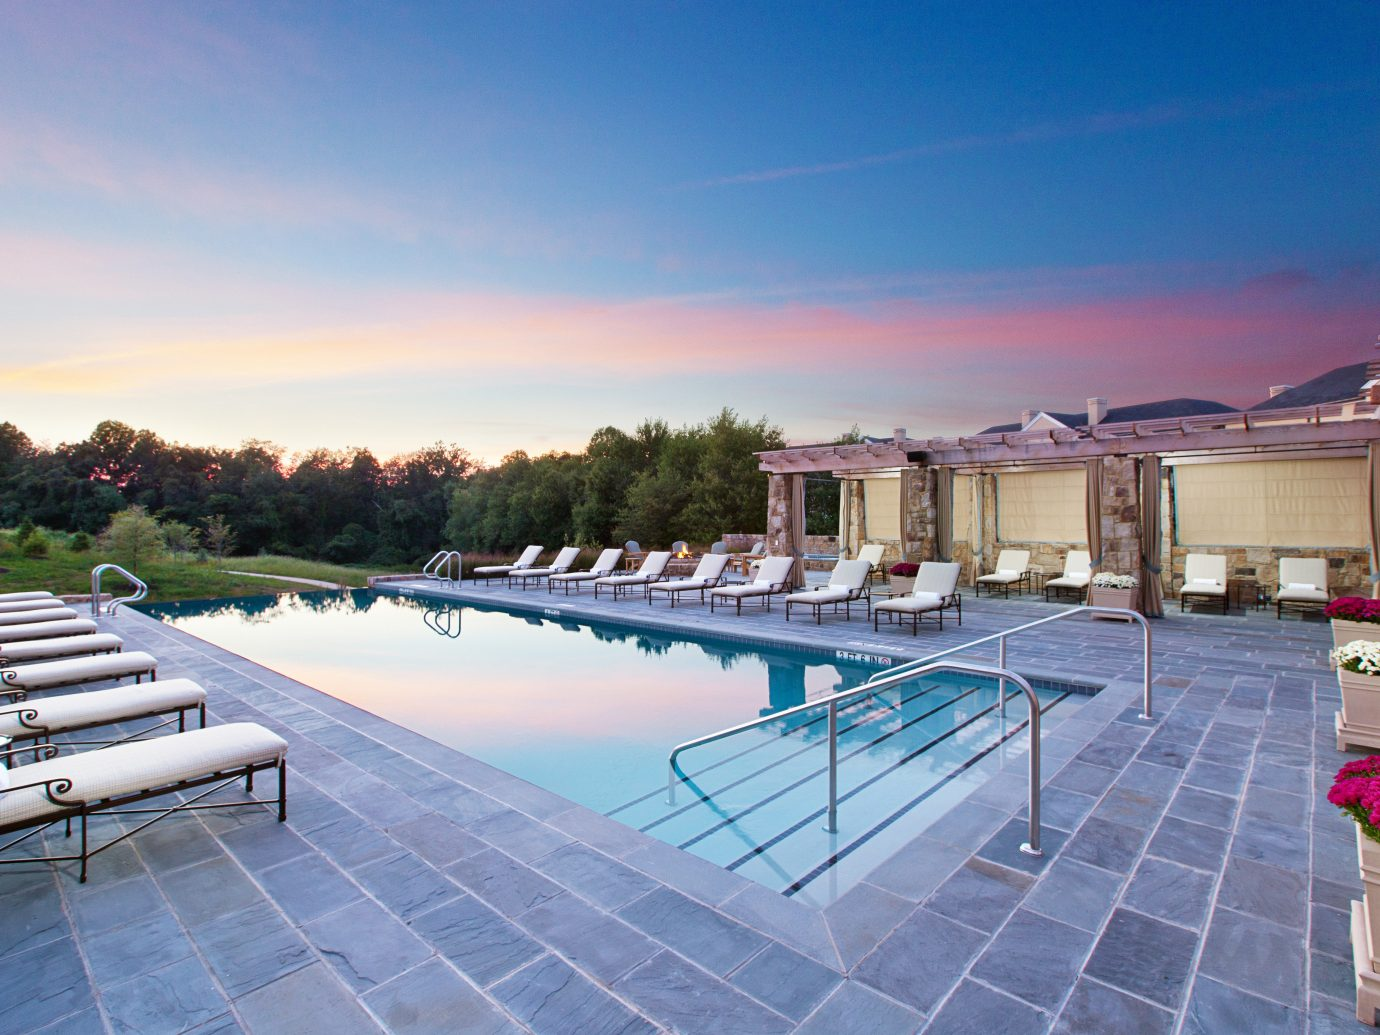 Country Hotels Pool Ranch Resort Romance sky outdoor ground swimming pool property leisure estate vacation Villa real estate condominium mansion Deck